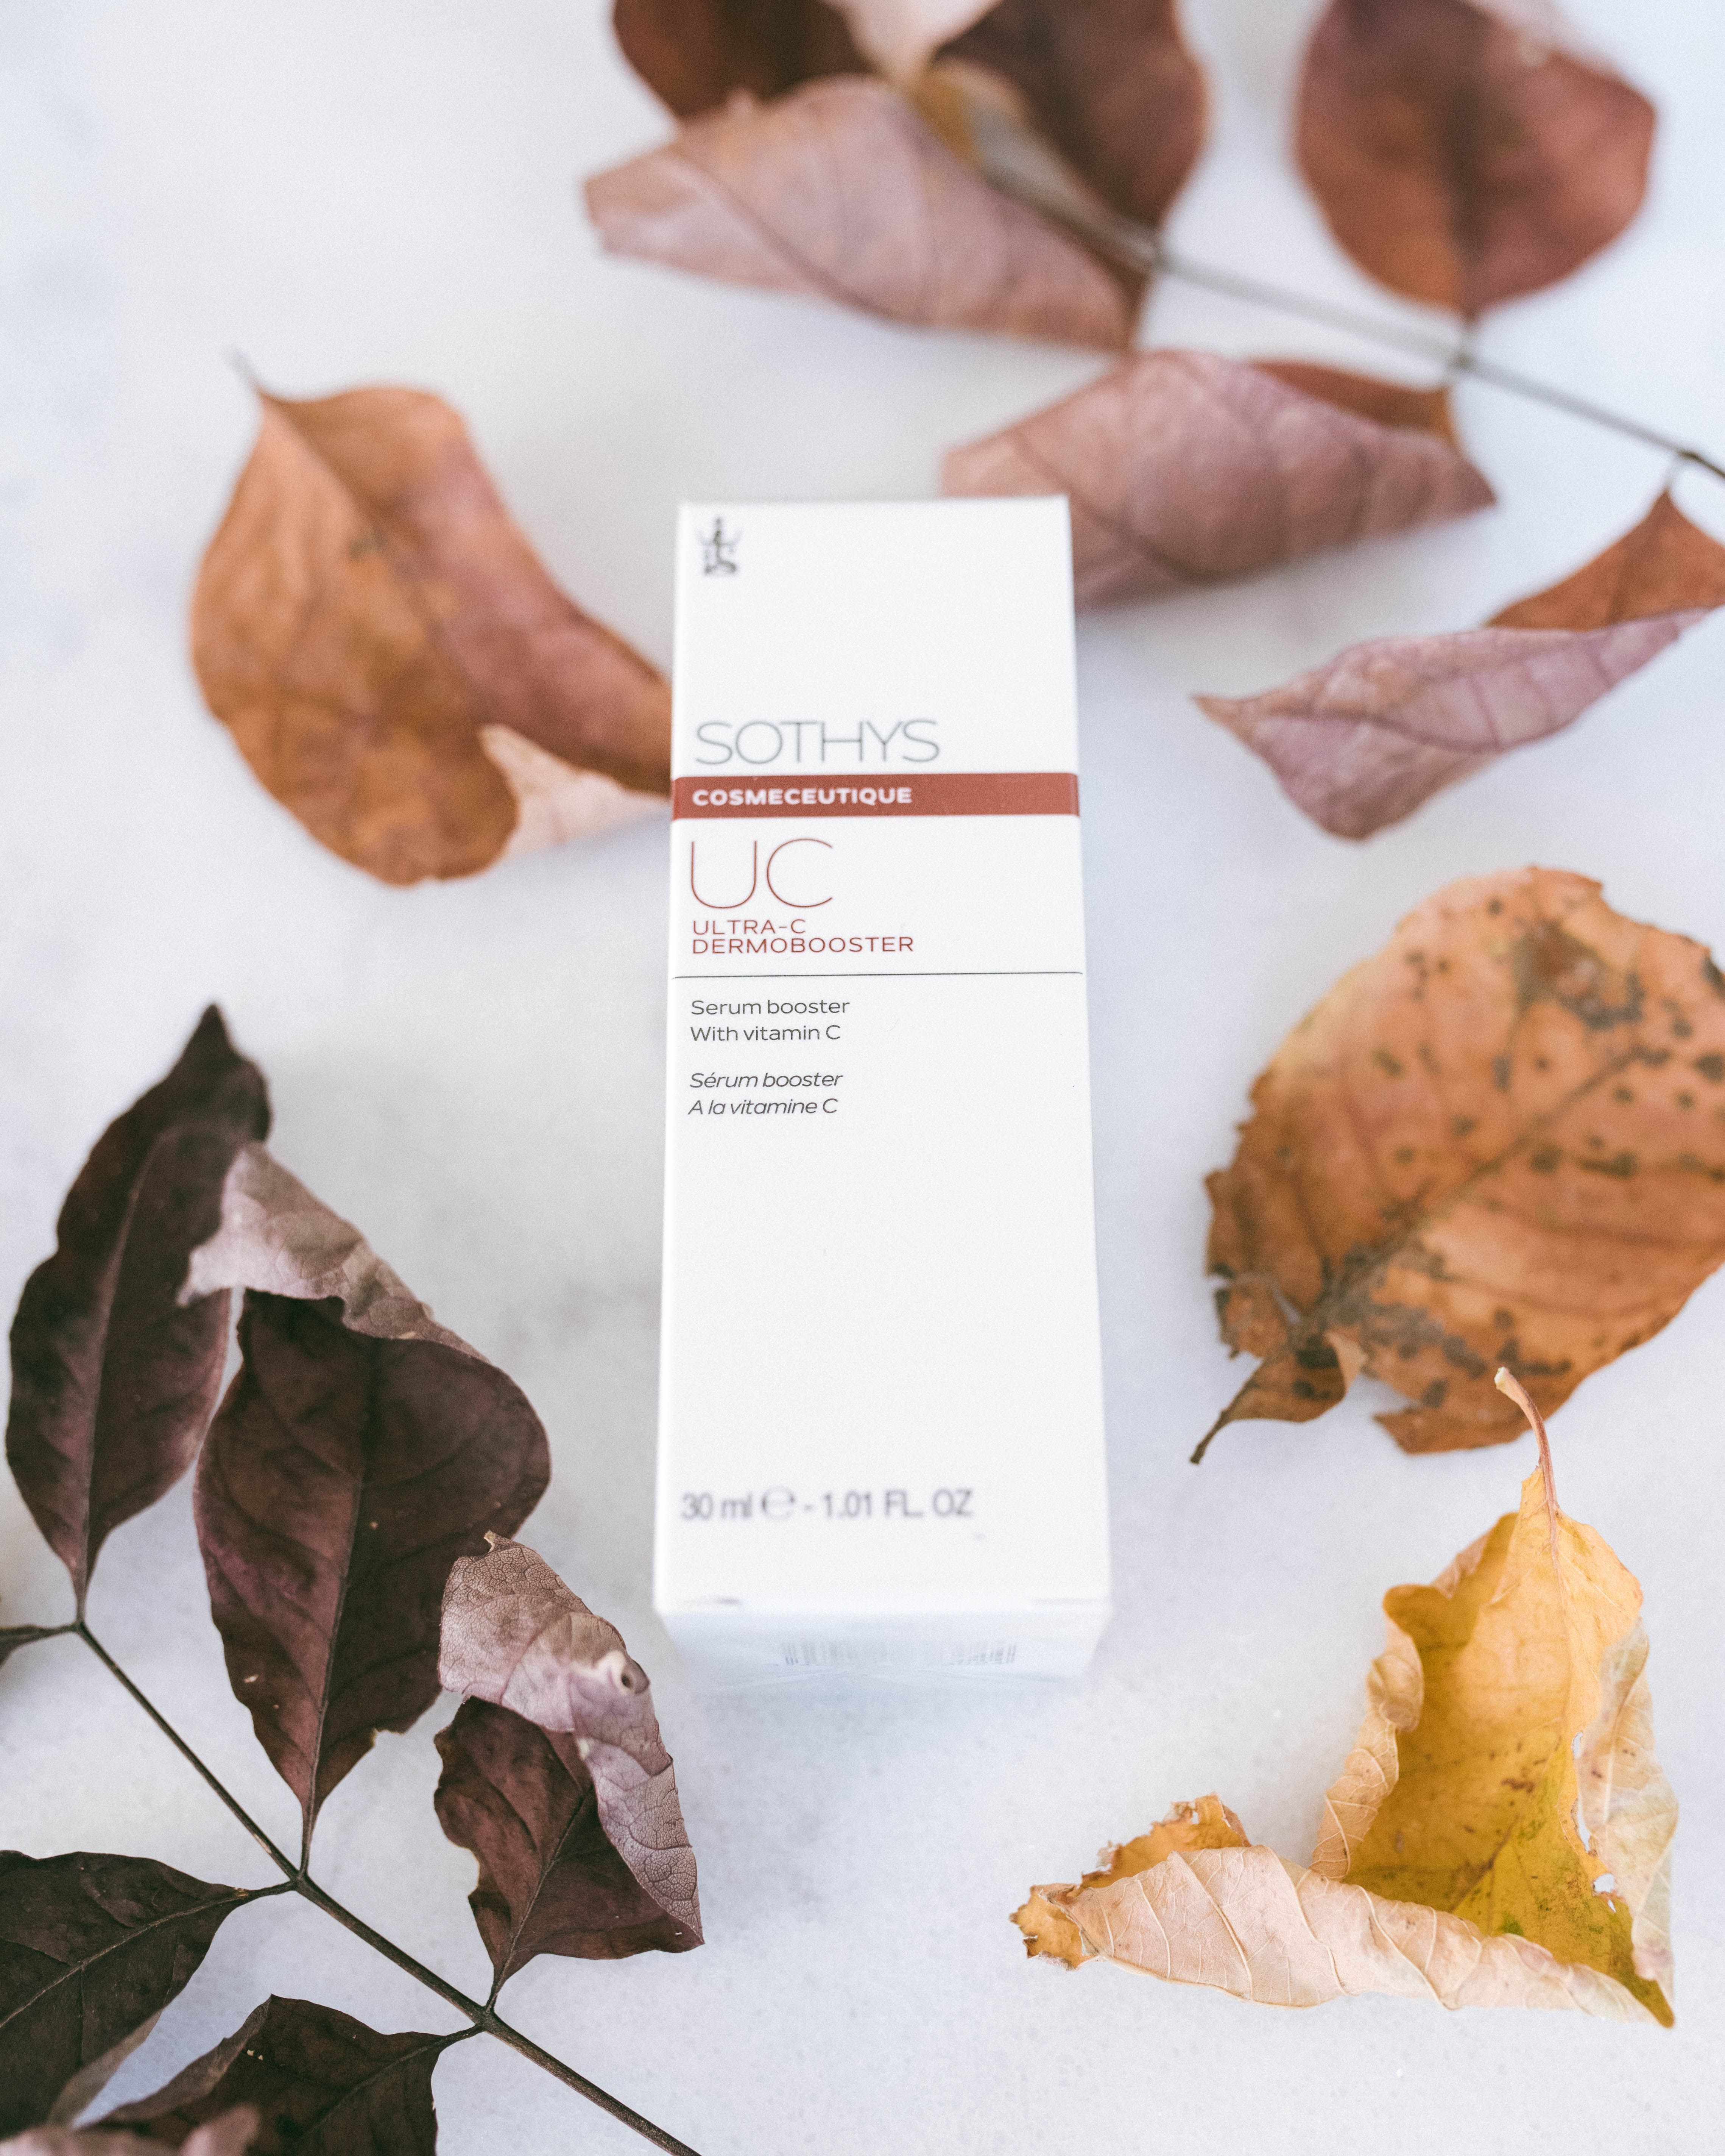 Gilla recommends Sothys Ultra-C Dermabooster for younger, brighter, and more even skin. This Vitamin C packed product micro-exfoliates skin's surface, moisturizes, and protects skin against environmental pollutants or stressors. Add this silky serum to your night routine to optimize your skin!